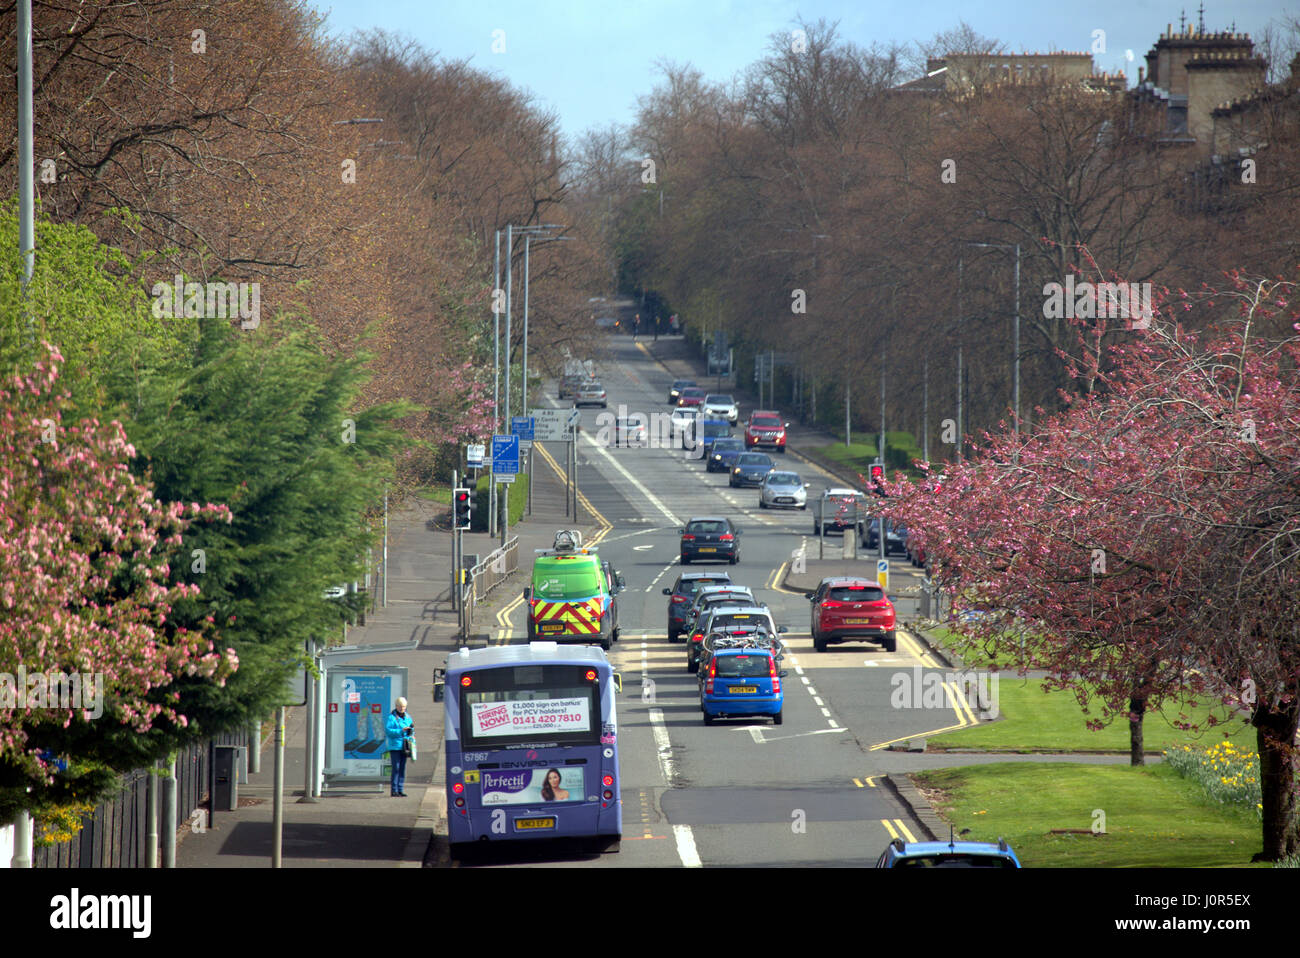 Great Western Road at Gartnavel General Hospital Glasgow Scotland street scene high viewpoint - Stock Image